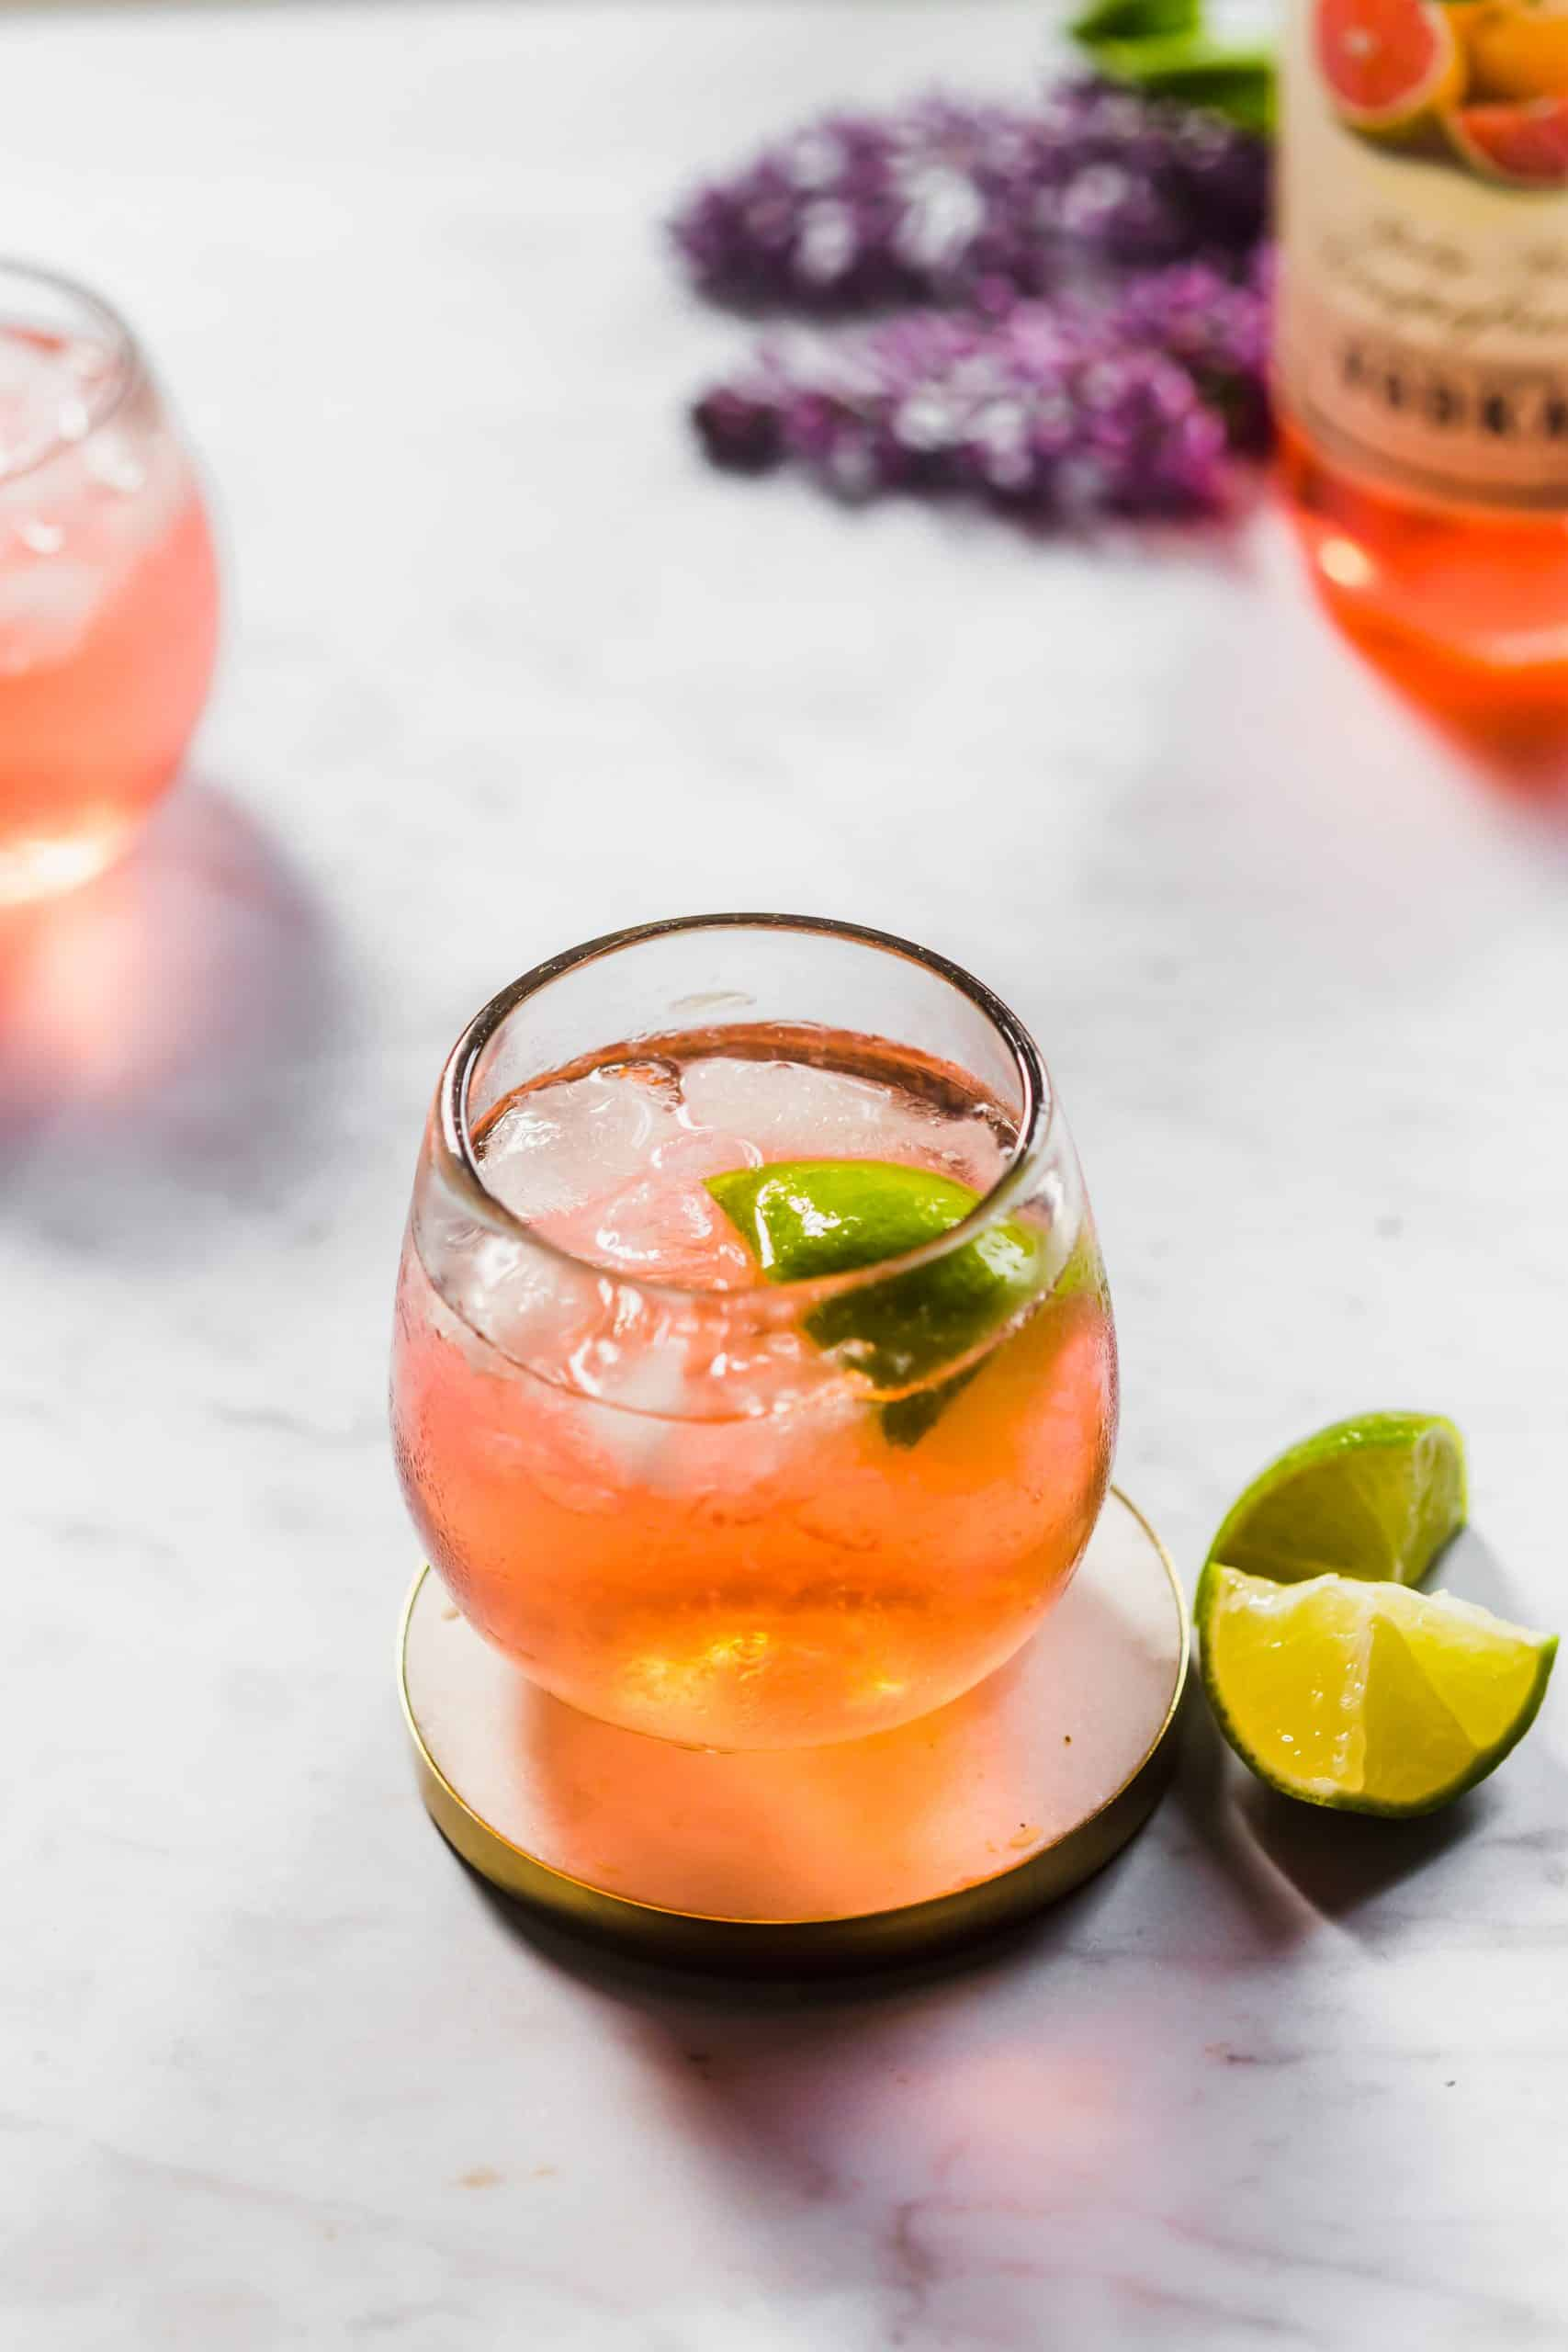 Grapefruit vodka tonic served in a stemless wine glass with ice and a lime wedge.